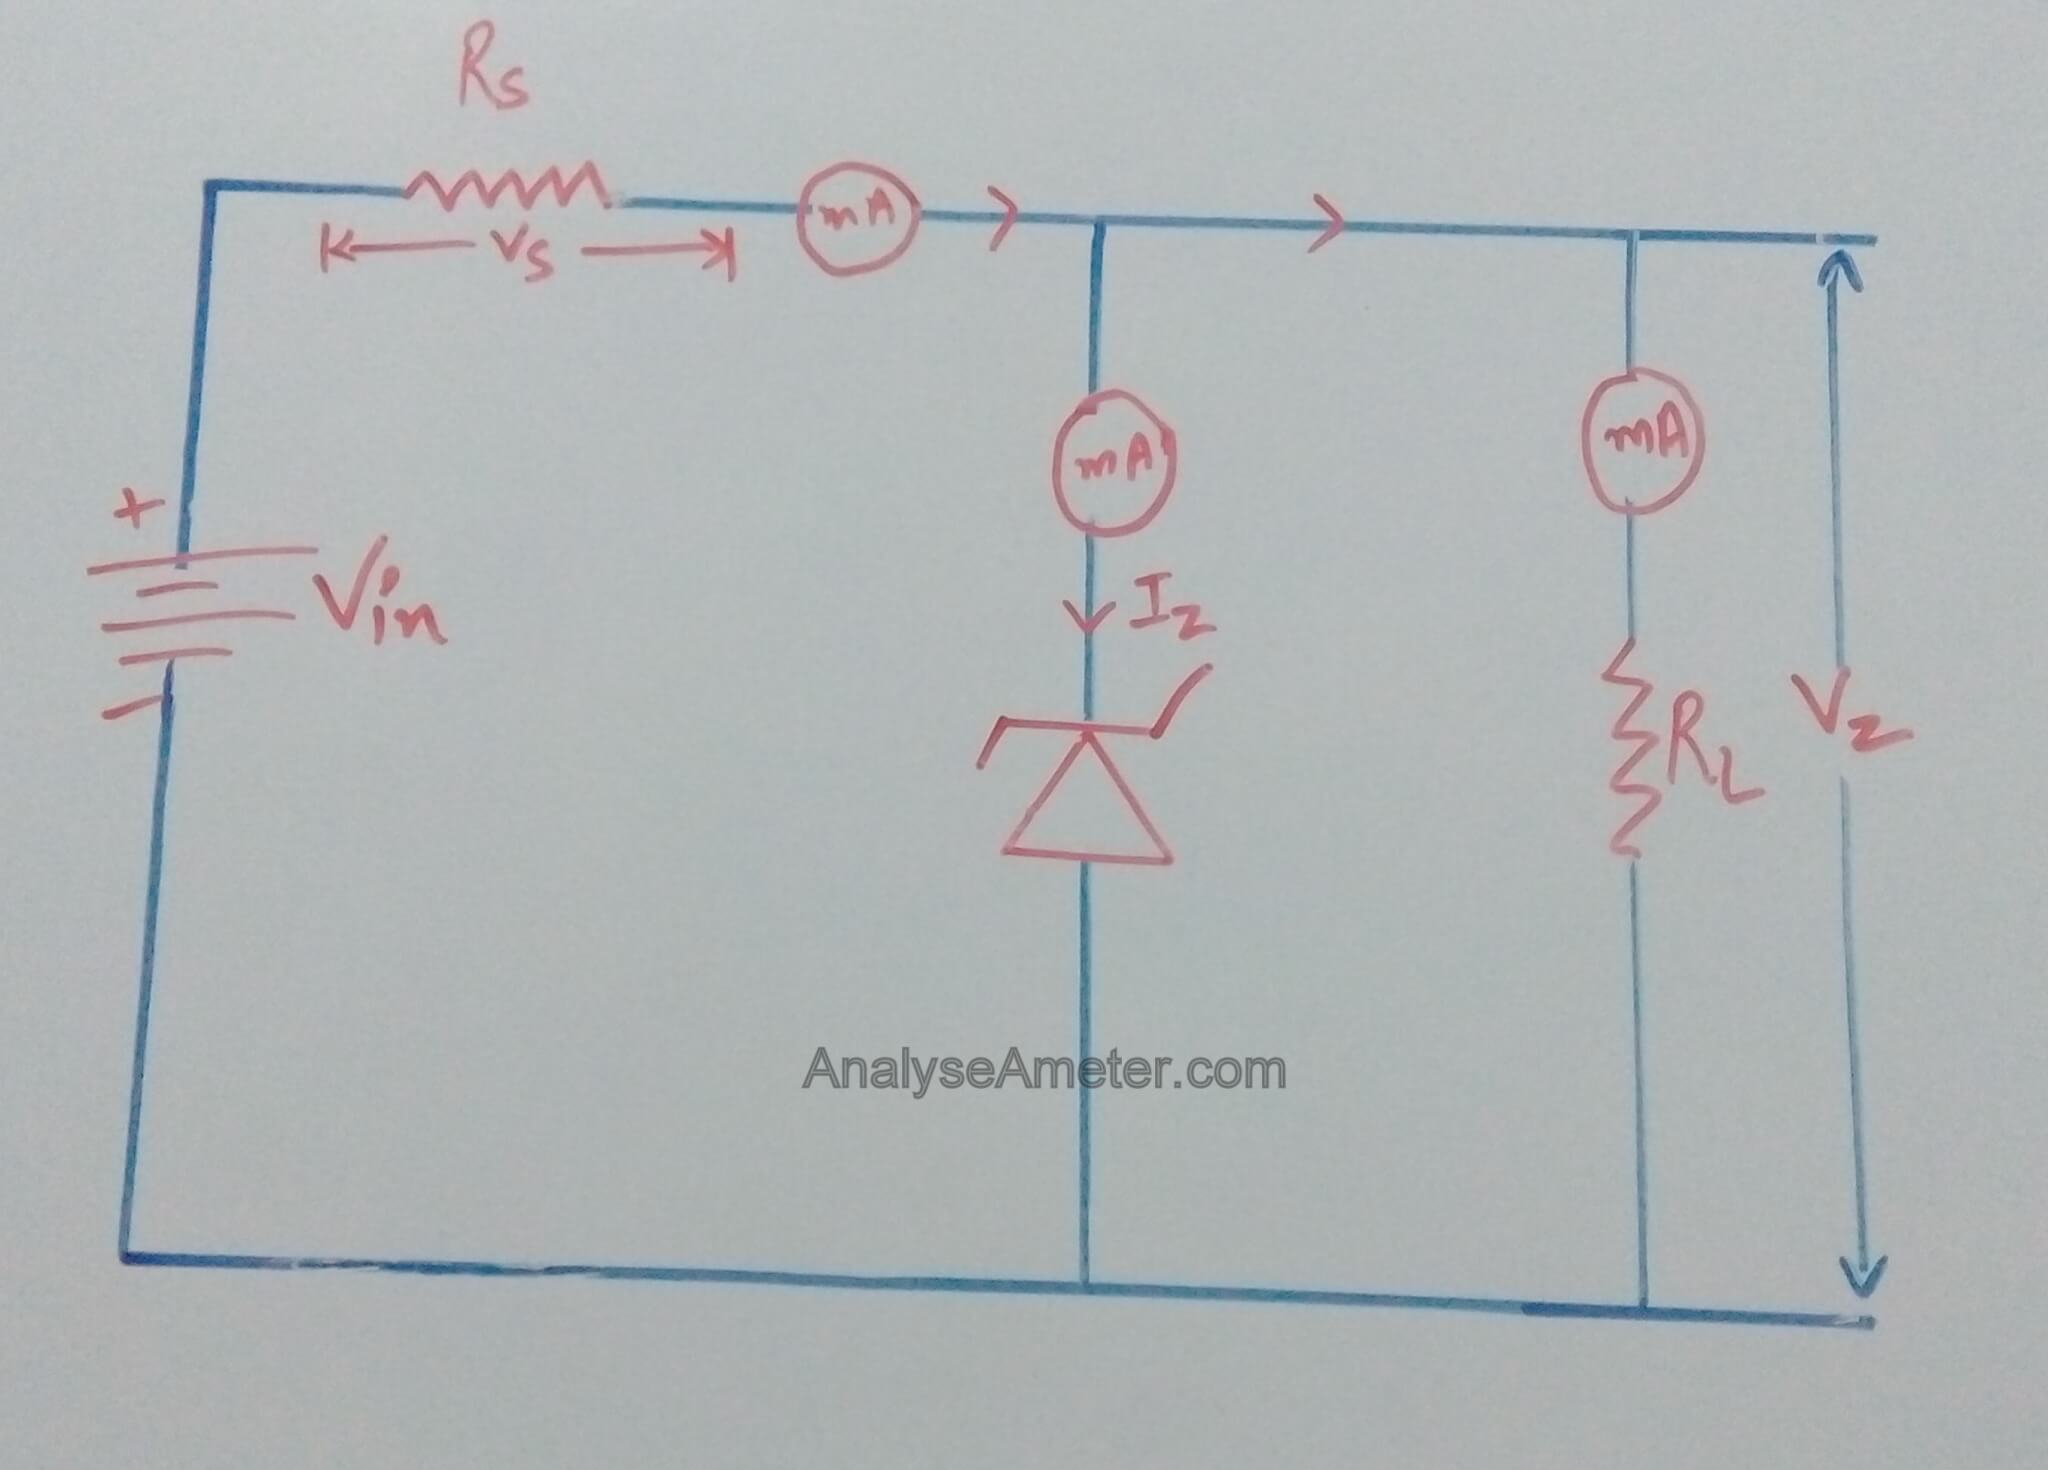 Zener Diode Working And Application Analyse A Meter Diodes In Circuits As Voltage Regulator Image